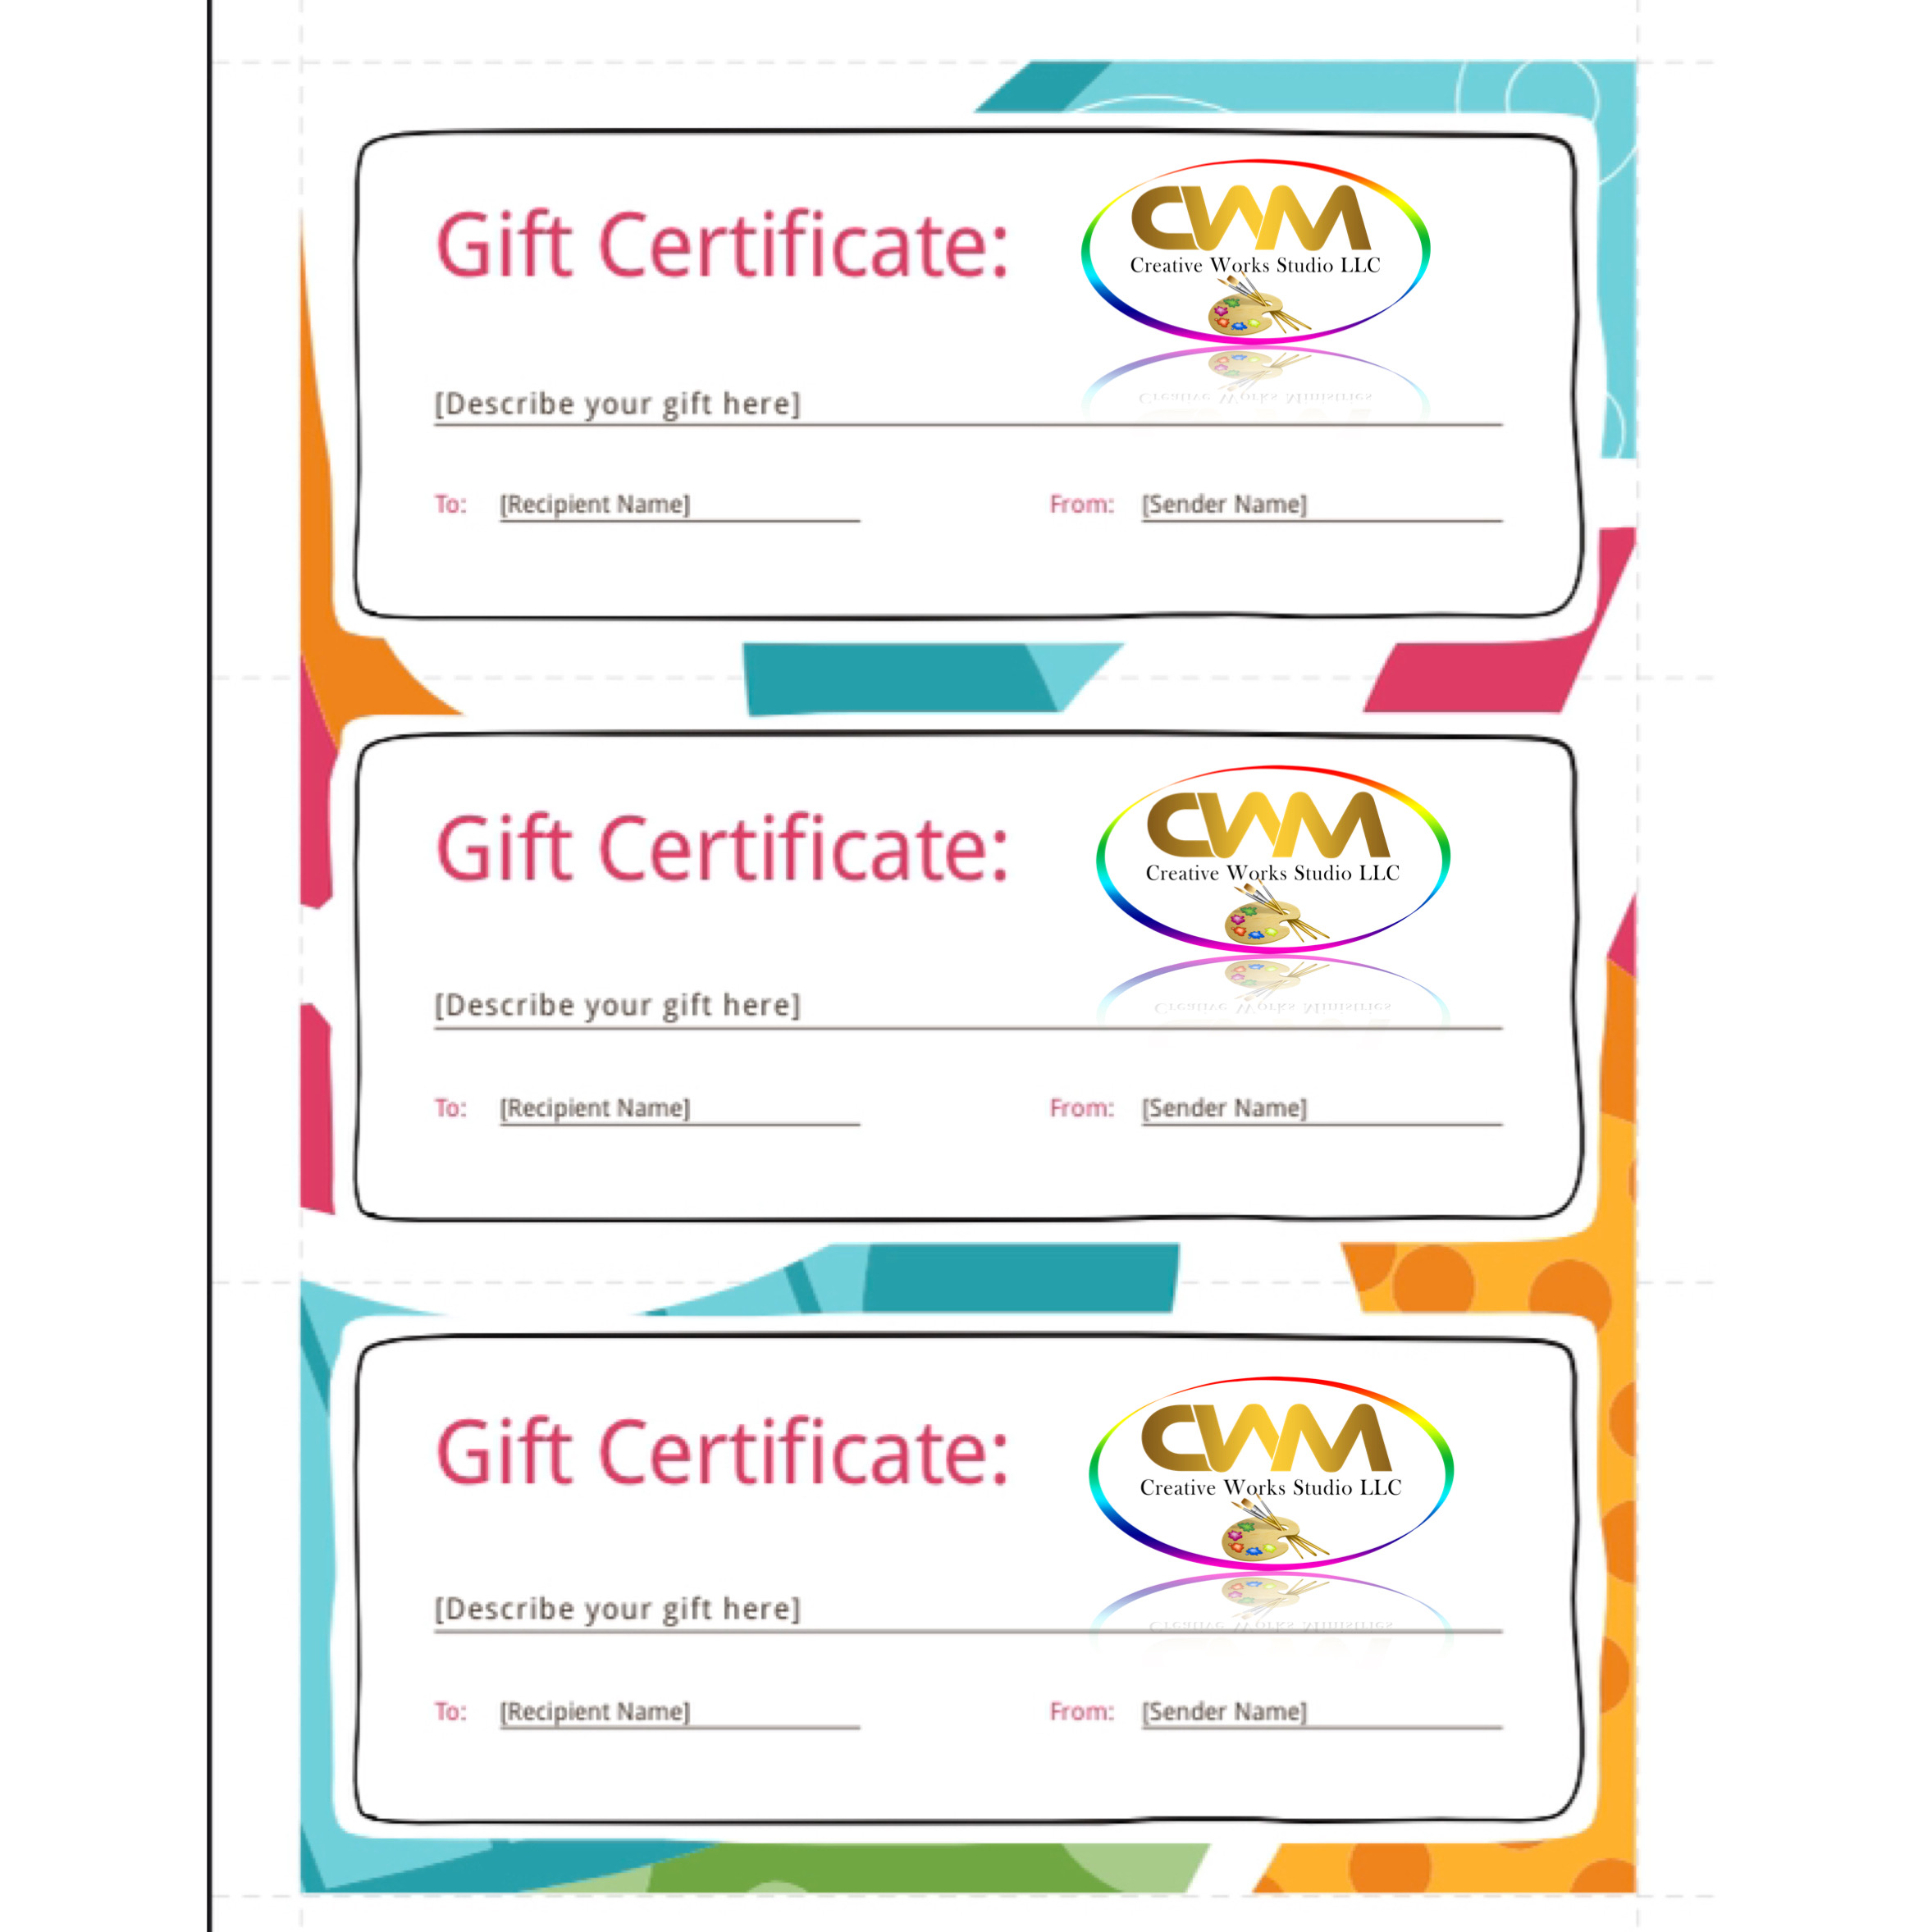 Gift Certificate 1hr session (Limited Time Special)